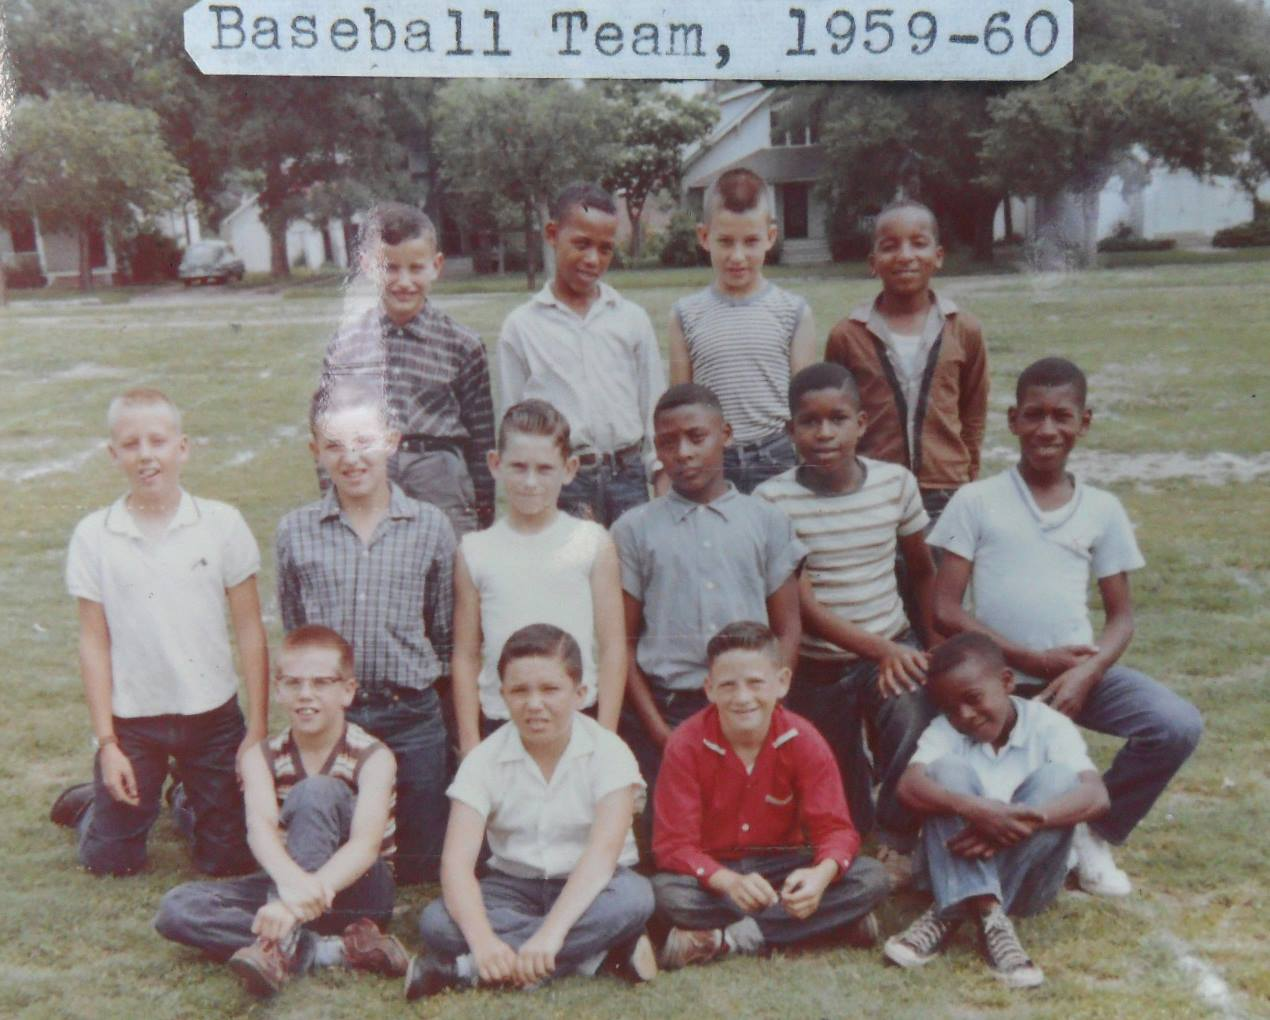 #119 1959-60 McKinley School Softball Team, ROD PHILLIPS FRONT ROW LEFT, PIANO PLAYER FOR JIM STAFFORD & MICHEAL MARTIN MURPHY BANDS